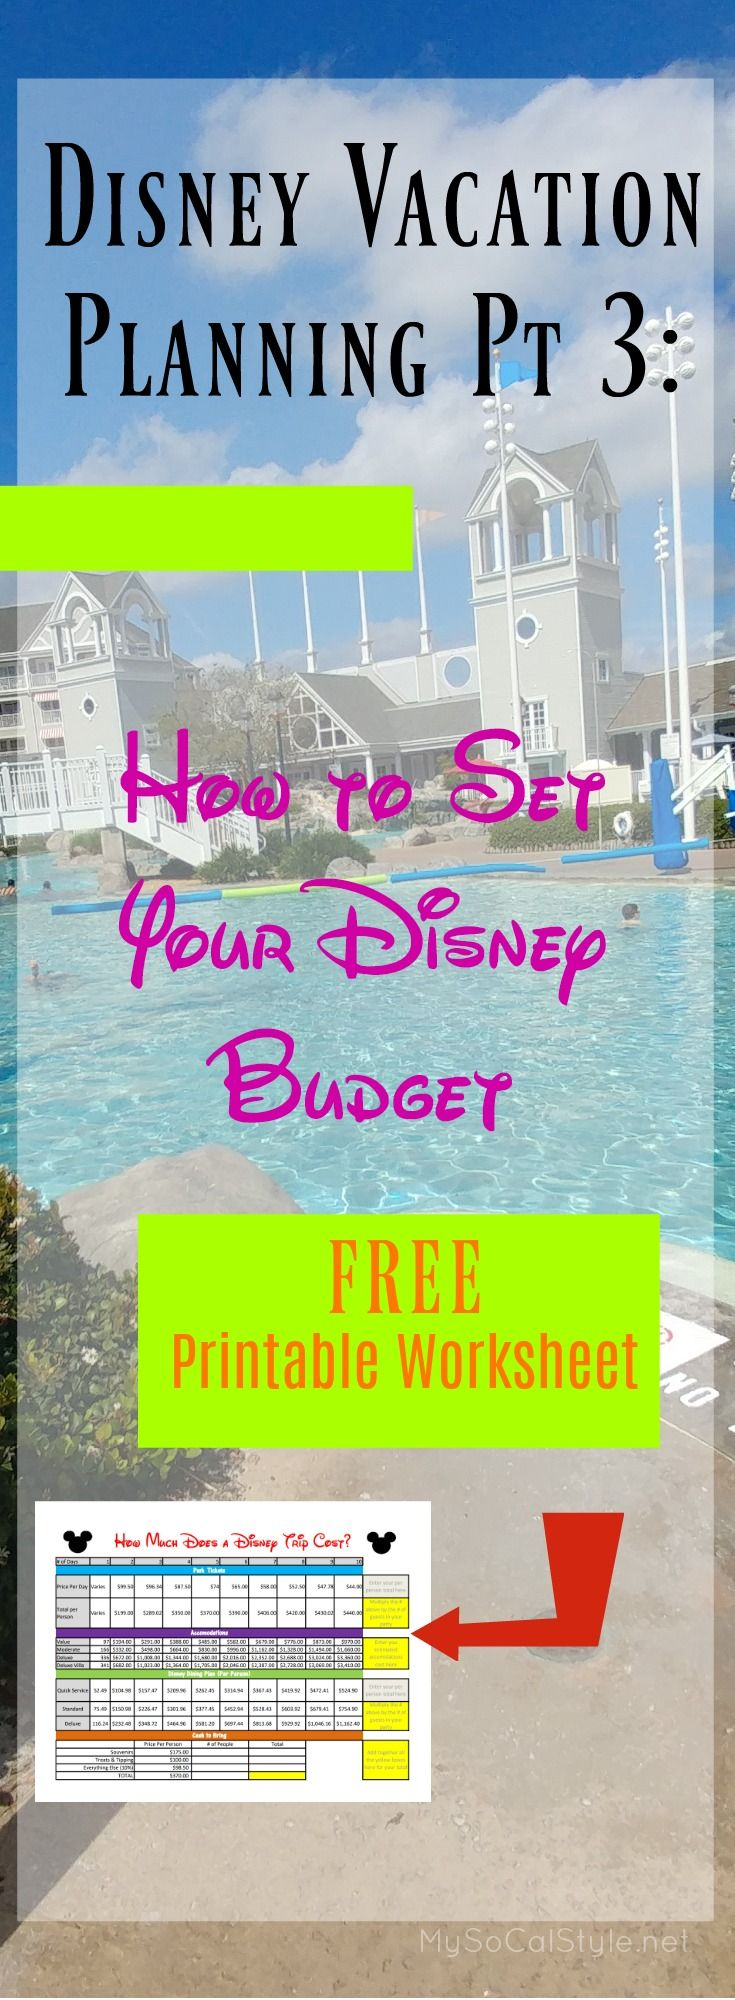 Check out this AWESOME budget worksheet for your next Disney Trip! #Disney #Planning #Disney